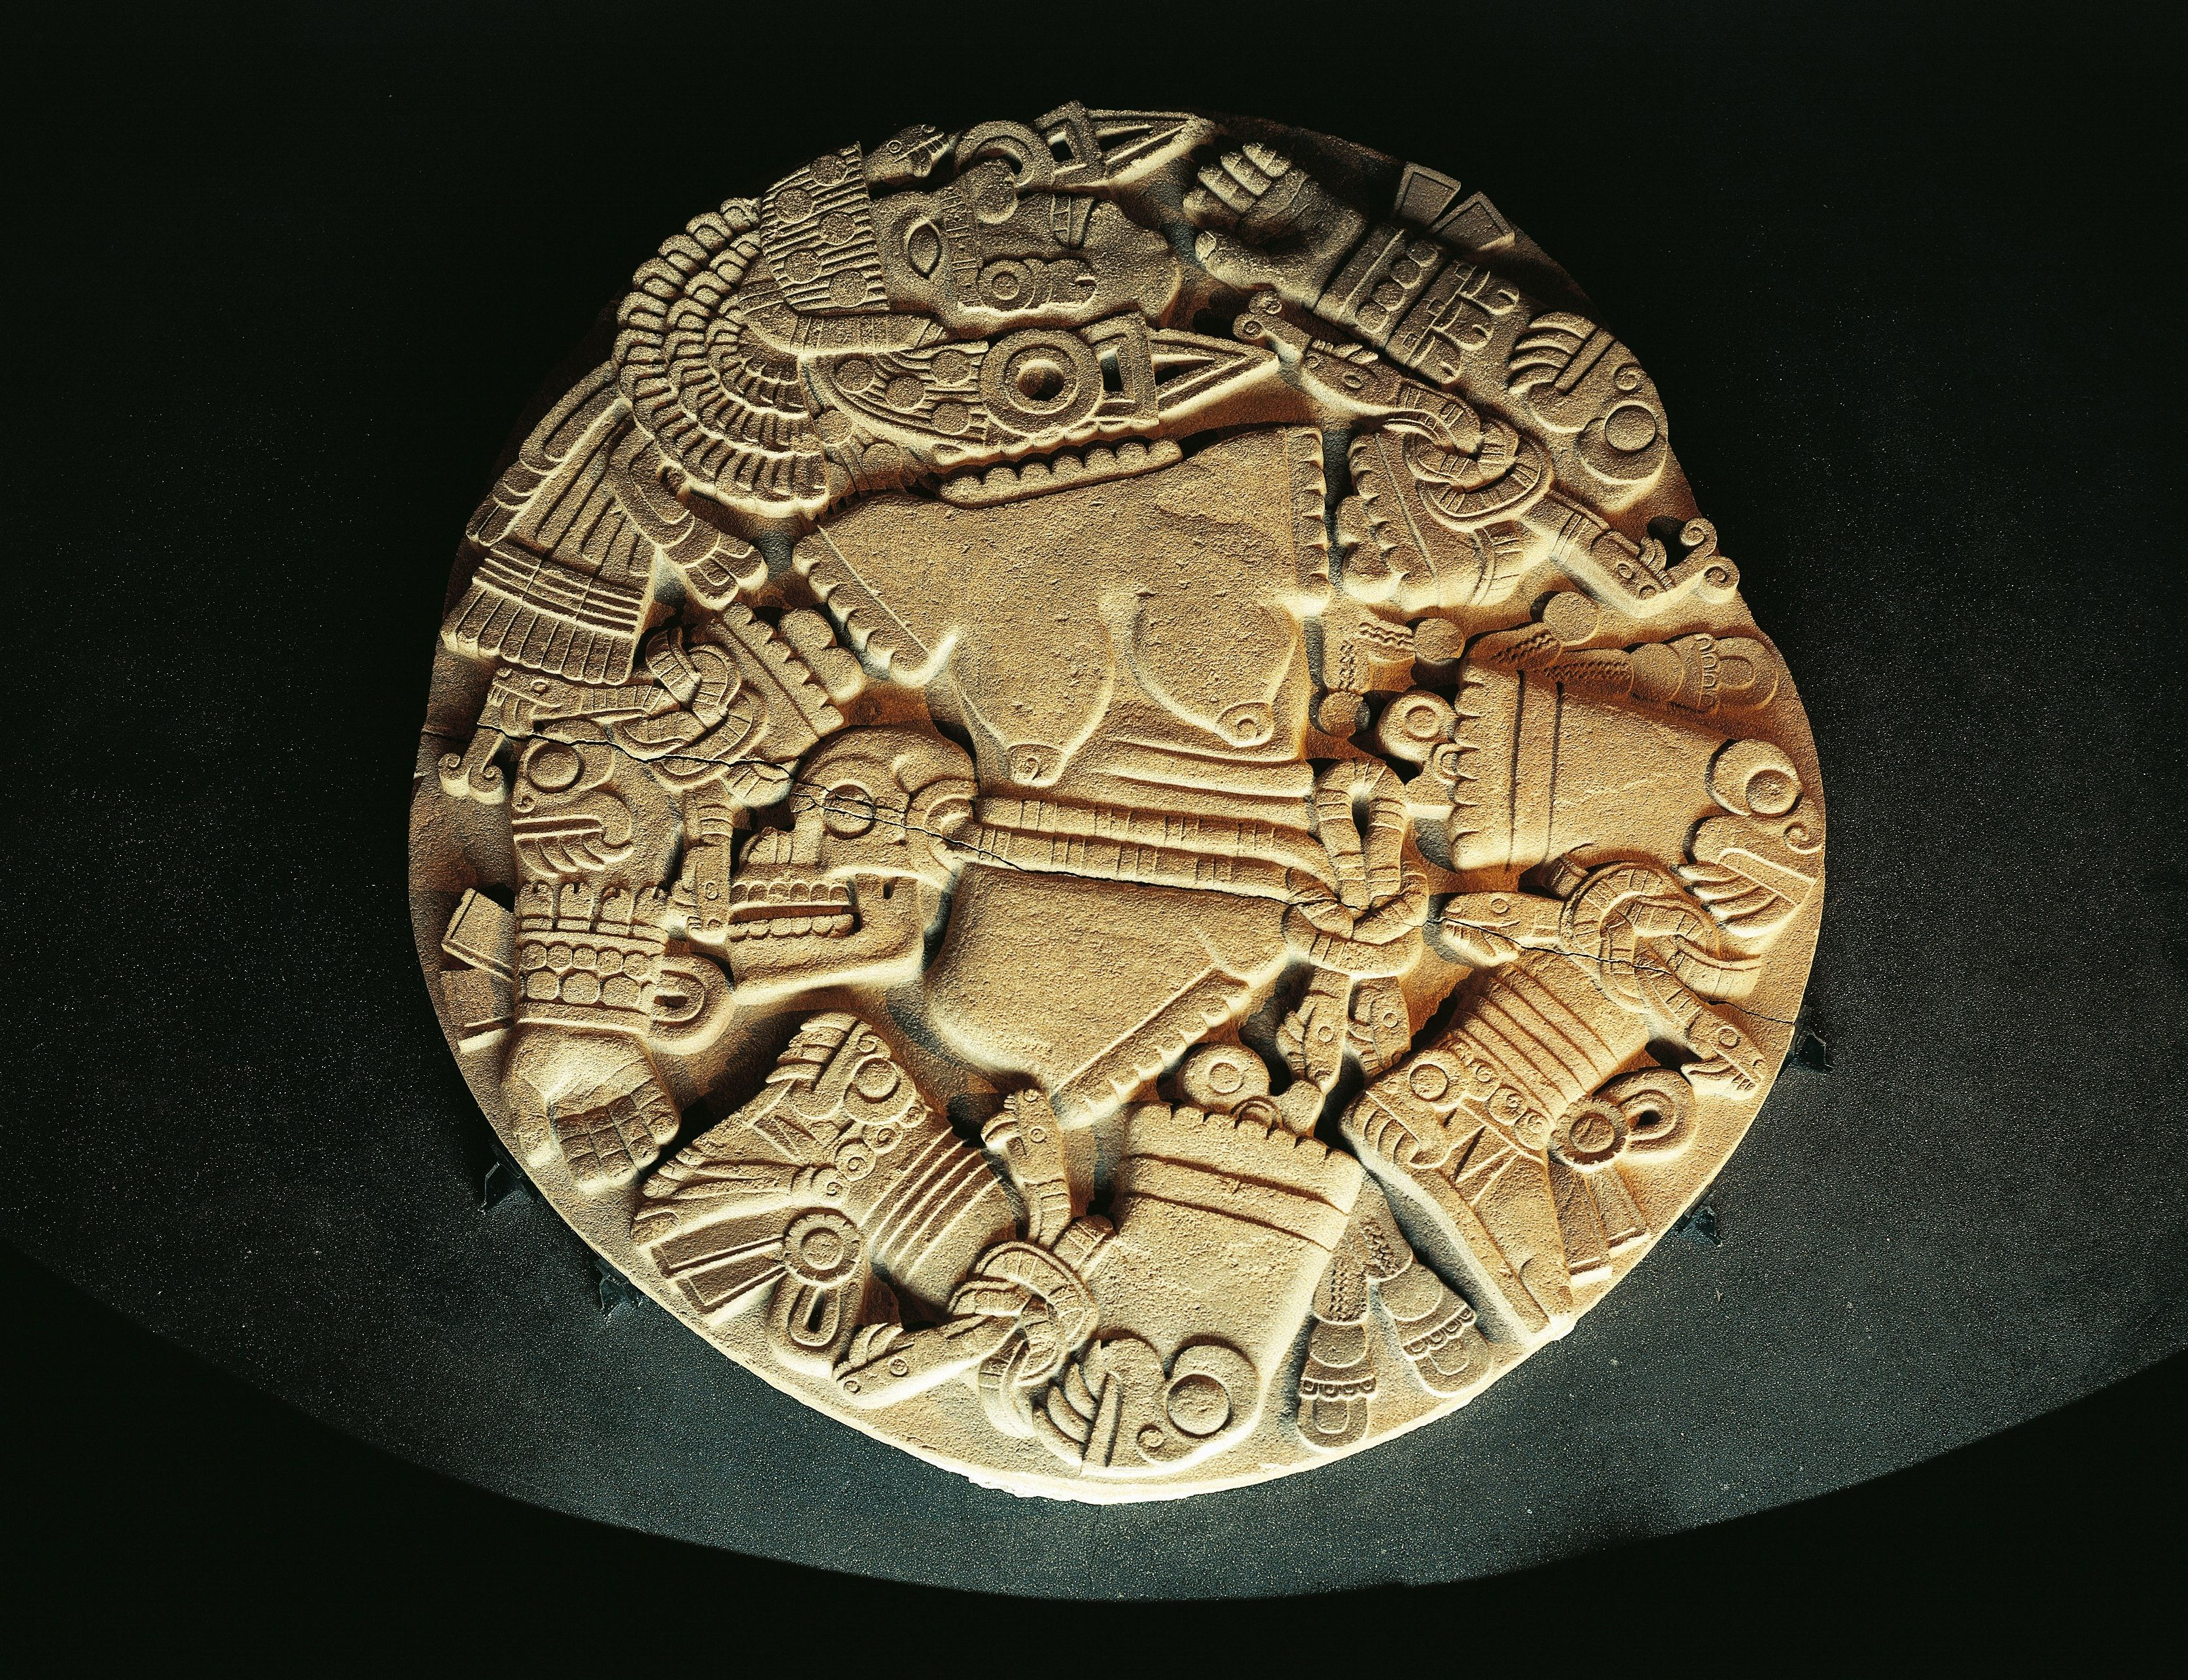 Carving of the Aztec goddess Coyolxauhqui